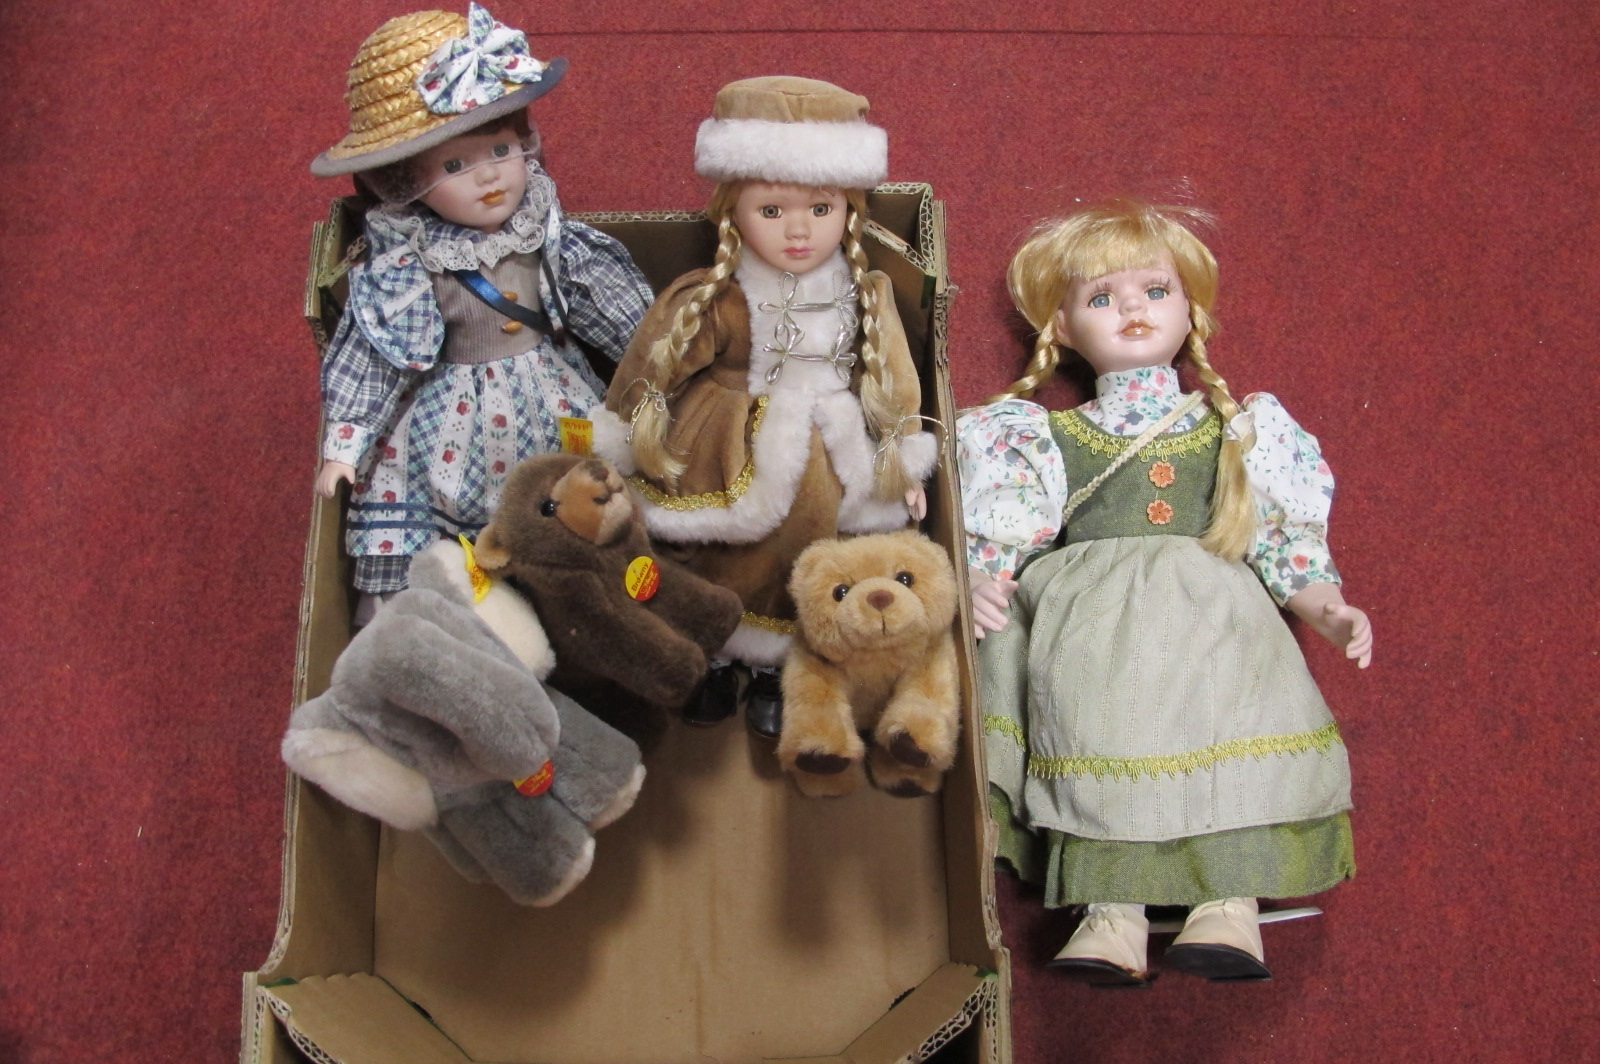 Steiff 'Cosy Jumbo', Steiff 'Browny' Bear, together with three dolls with porcelain heads, etc: